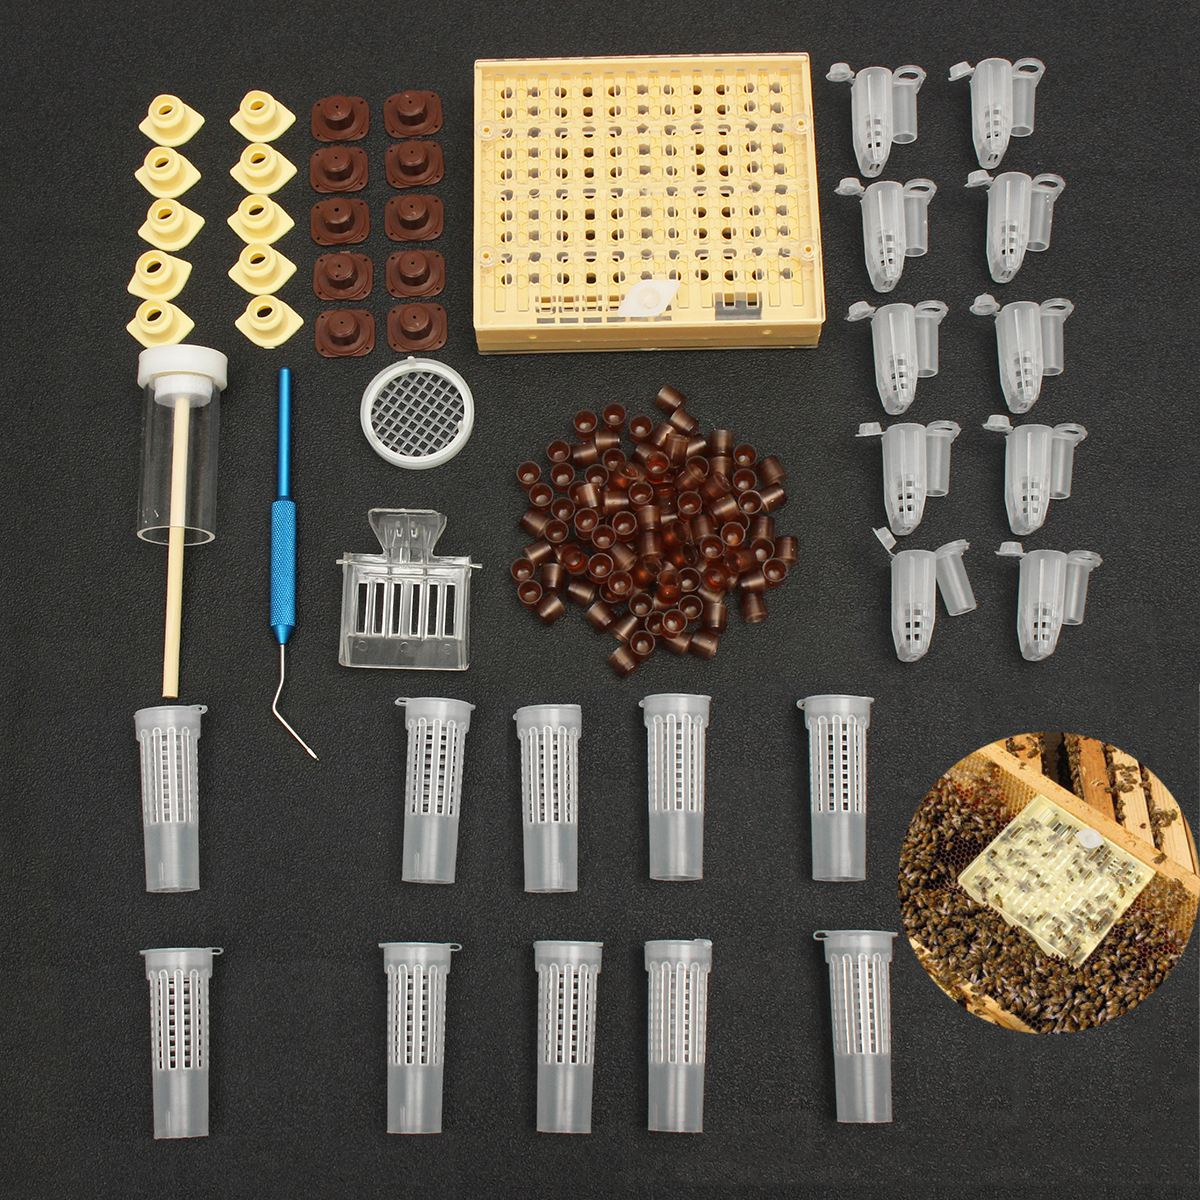 Hot Sale 155pcs plastic Queen Rearing System Cultivating Box Cell Cups Bee Catcher Cage Beekeeping Tool EquipmentHot Sale 155pcs plastic Queen Rearing System Cultivating Box Cell Cups Bee Catcher Cage Beekeeping Tool Equipment